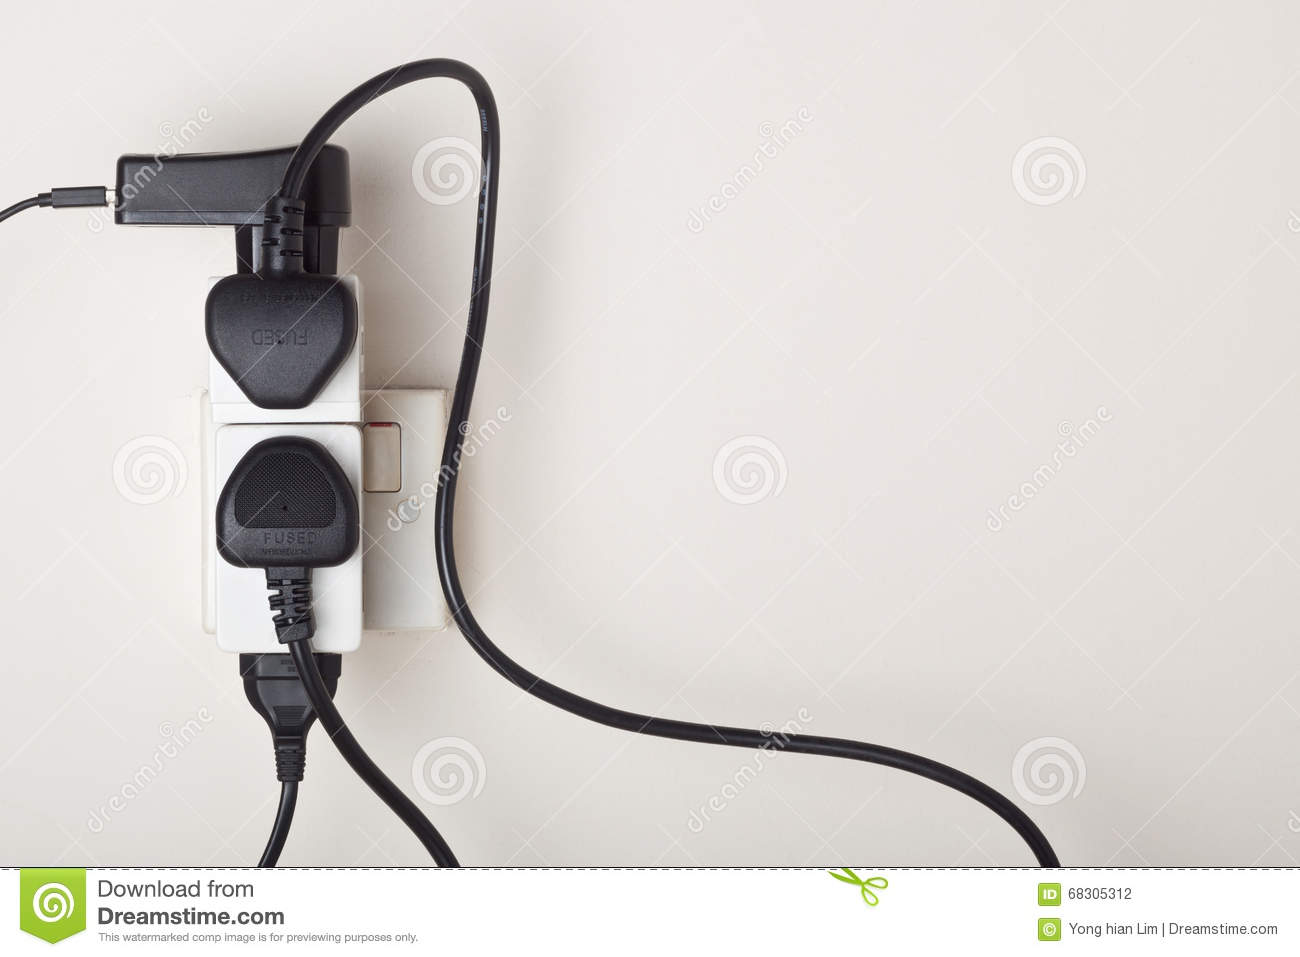 Overloaded Ac Power Wall Socket Stock Photo Image Of Wiring